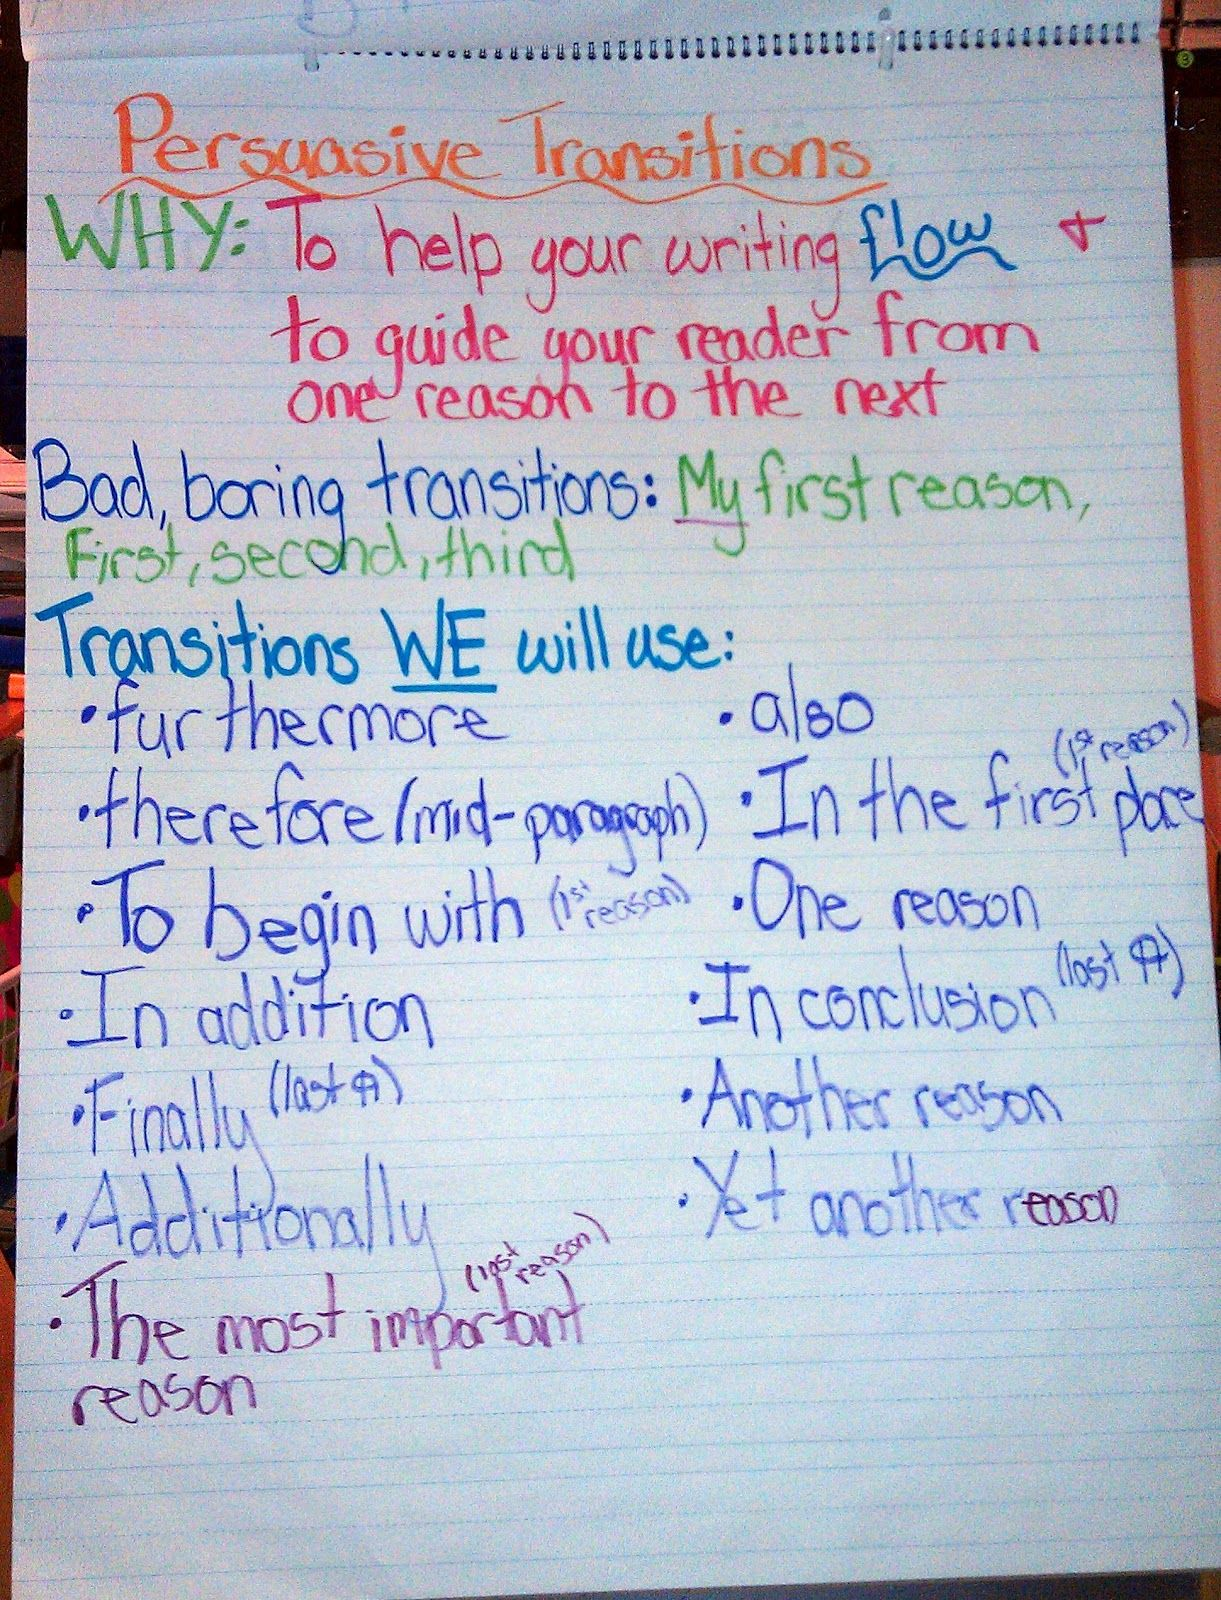 best images about persuasive writing small 17 best images about persuasive writing small moments anchor charts and charts